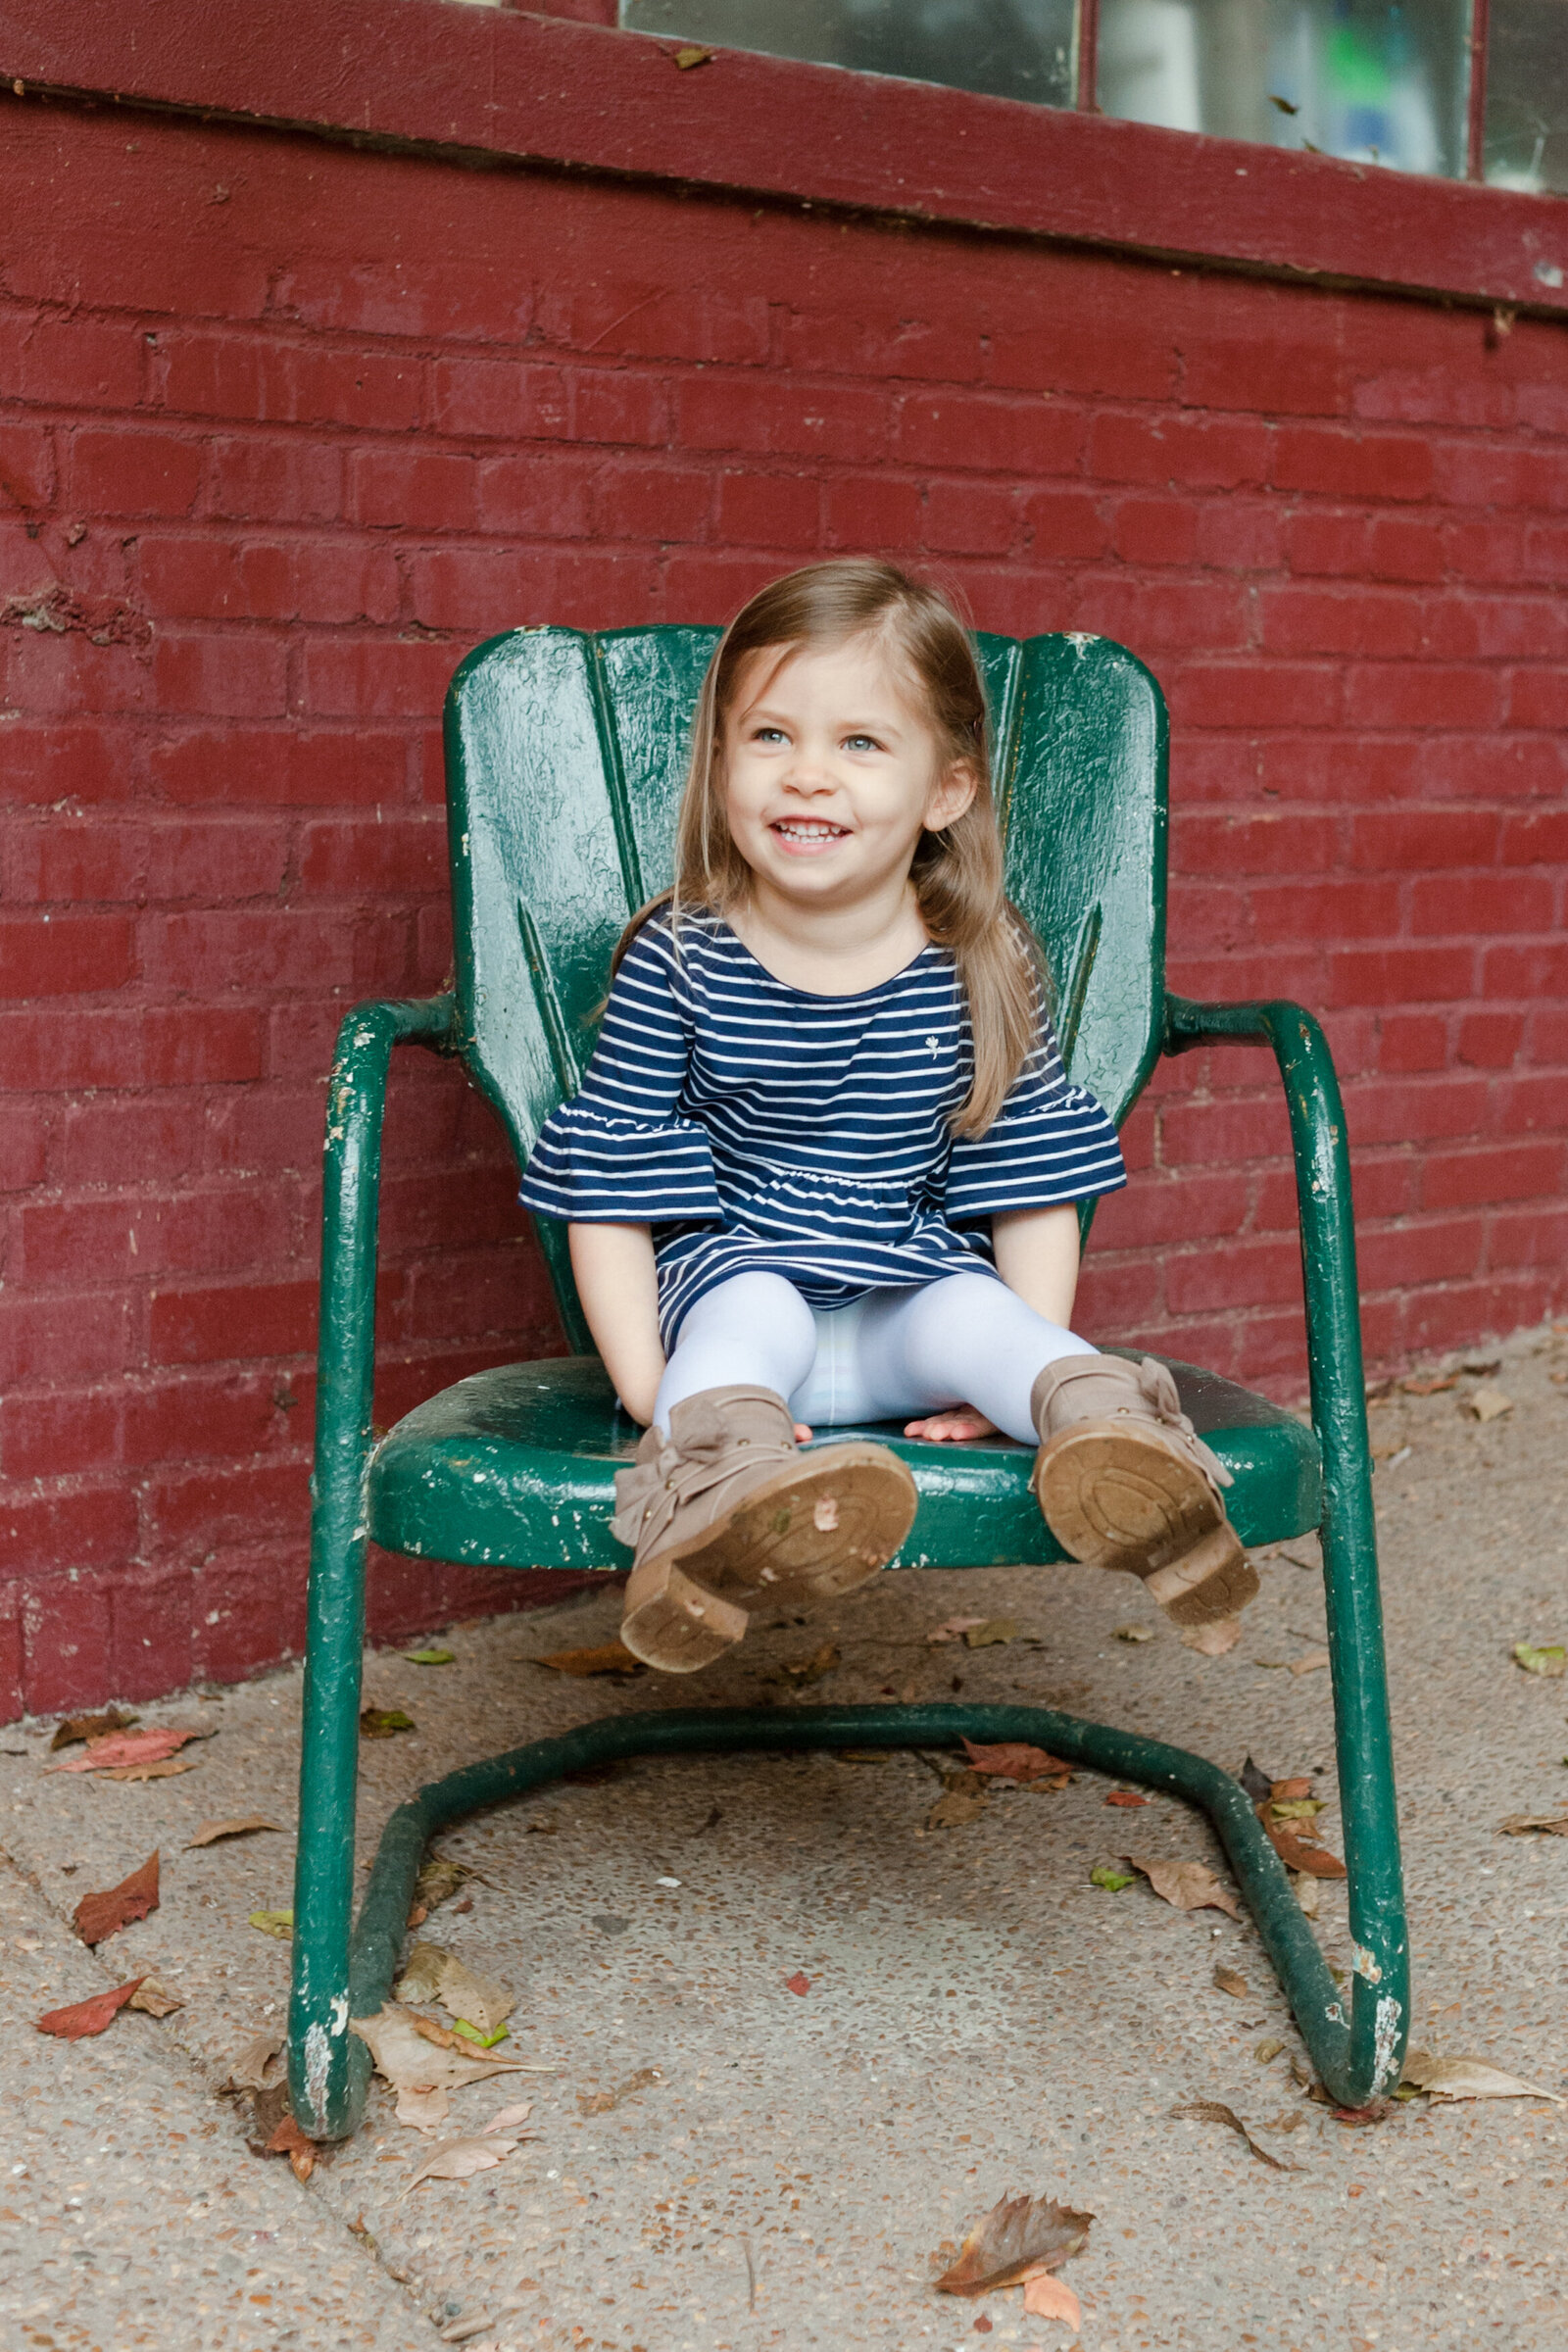 nashville_child_photographer_03